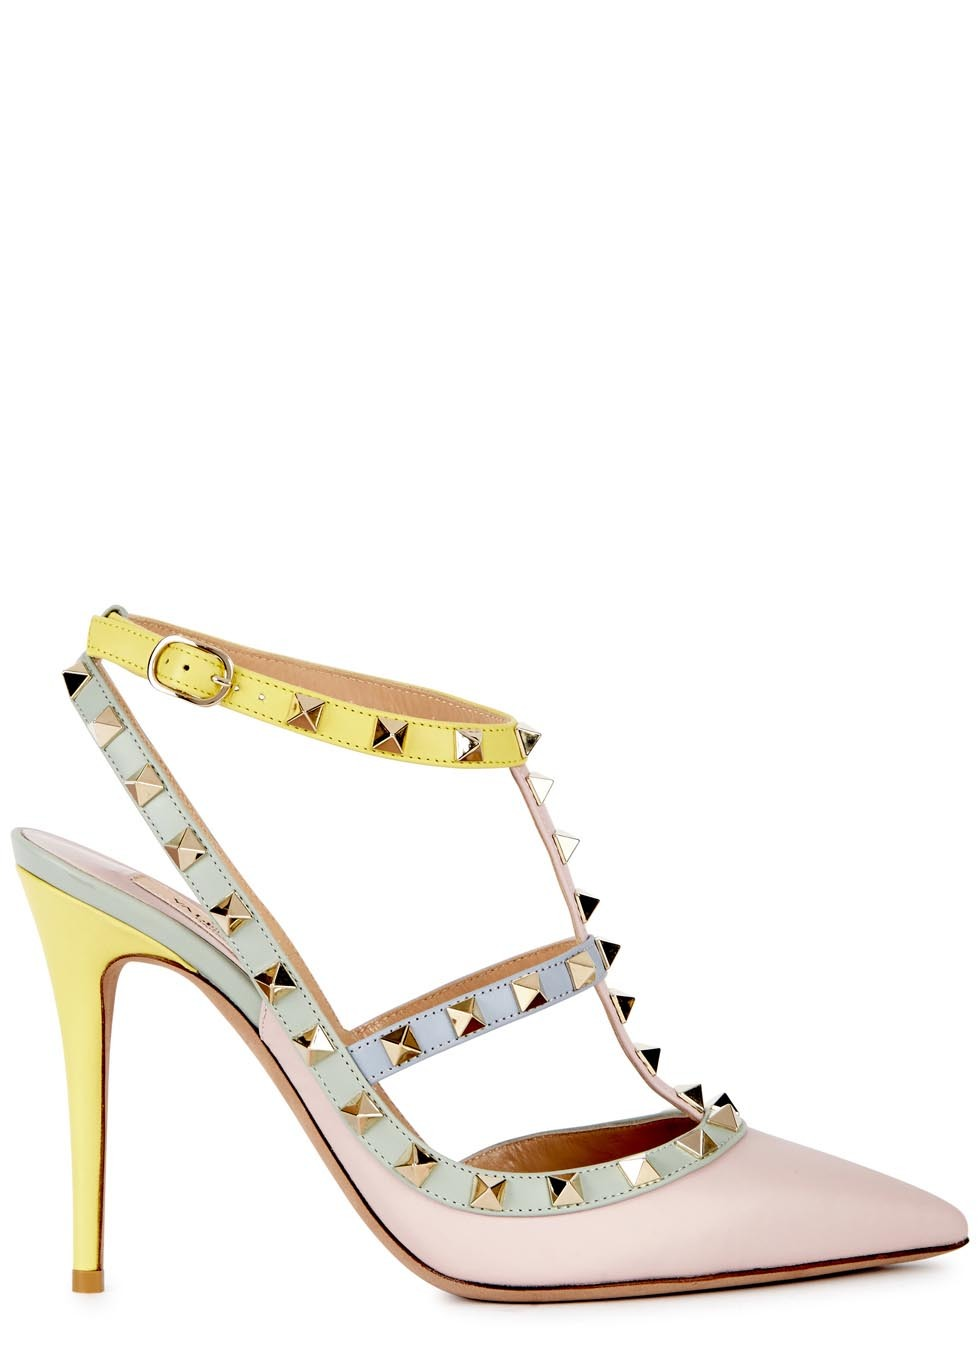 Rockstud 115 Pastel Leather Pumps - predominant colour: blush; secondary colour: pale blue; occasions: evening, occasion, creative work; material: leather; heel height: high; embellishment: studs; heel: stiletto; toe: pointed toe; style: courts; finish: plain; pattern: colourblock; season: s/s 2015; wardrobe: highlight